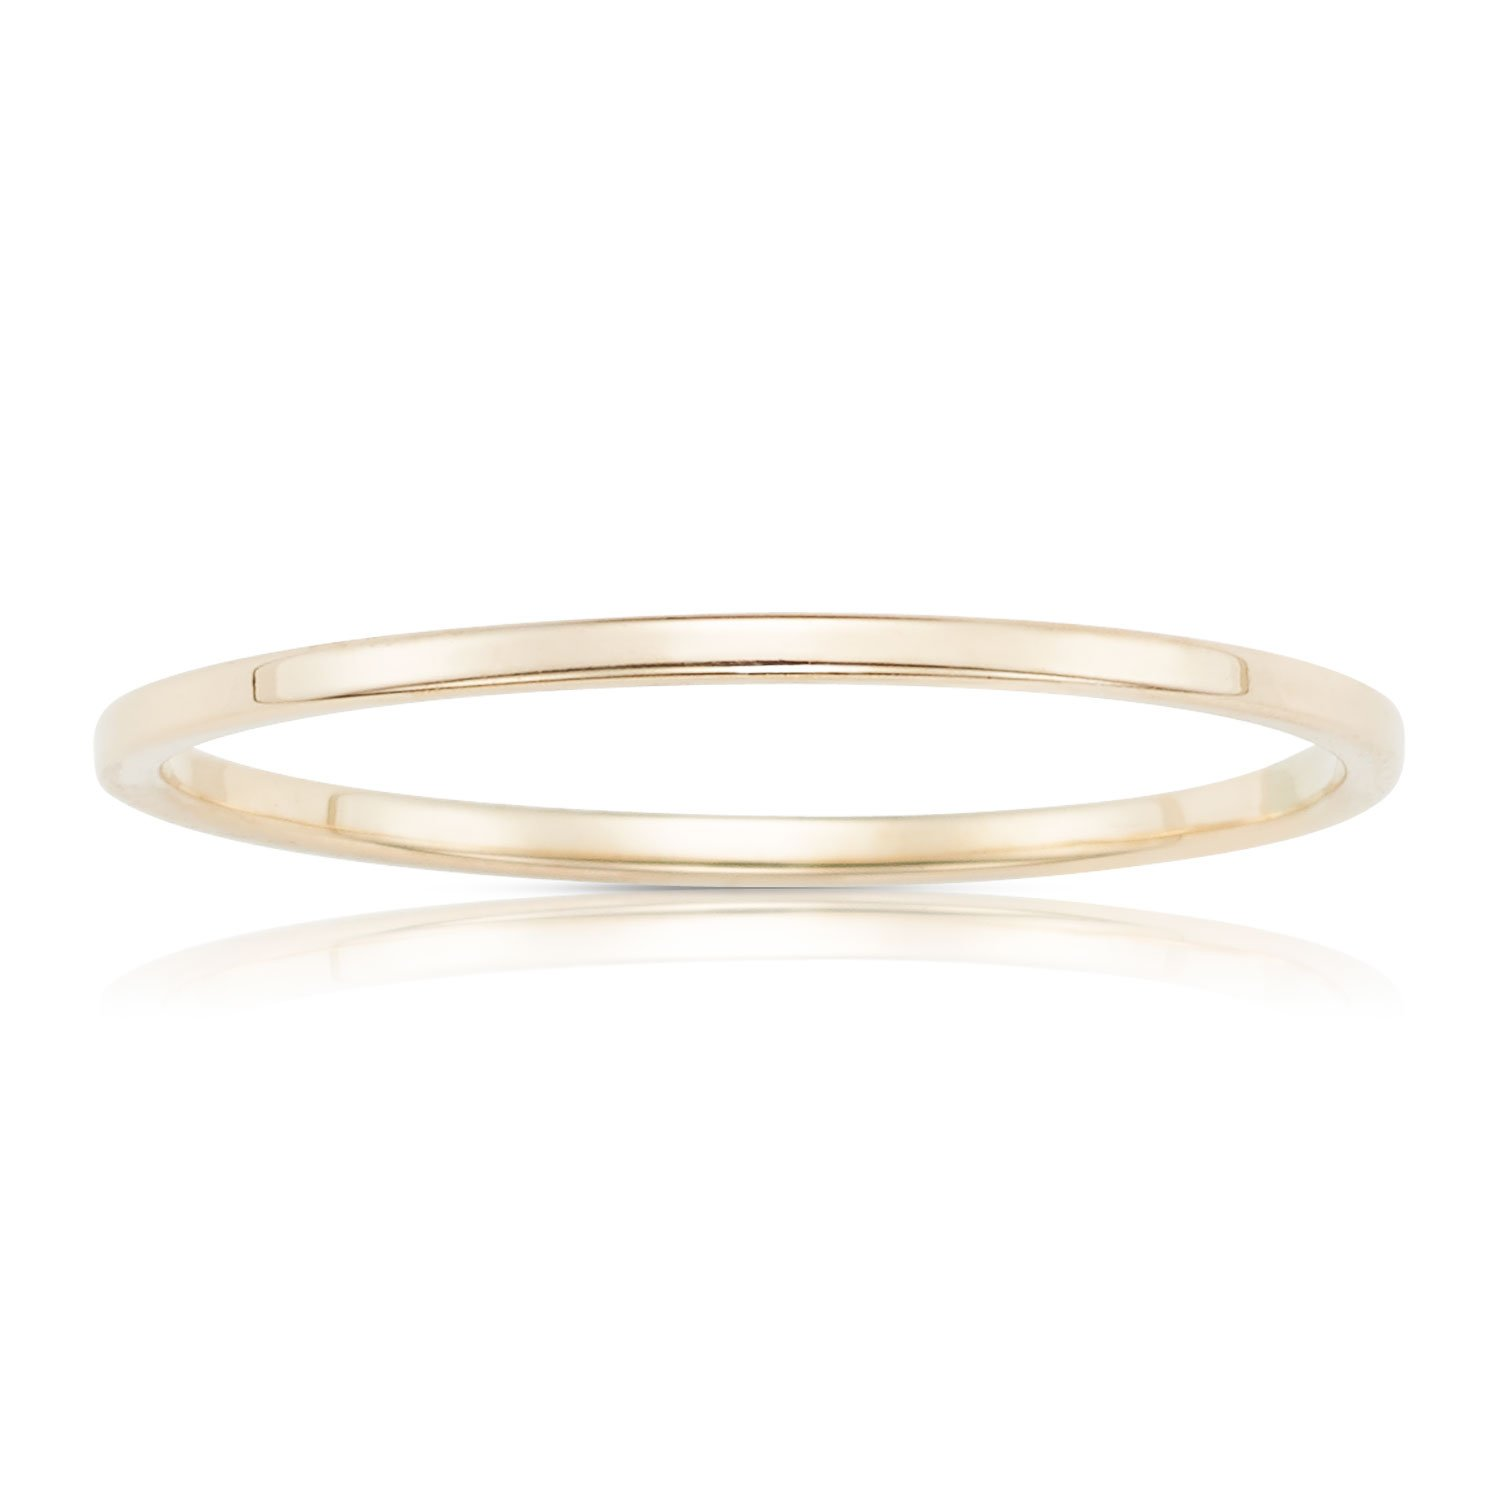 Jewel Connection Real 14K Yellow Gold Petite Stackable Ring with Smooth Square Finish for Women and Girls (6) by Jewel Connection (Image #1)